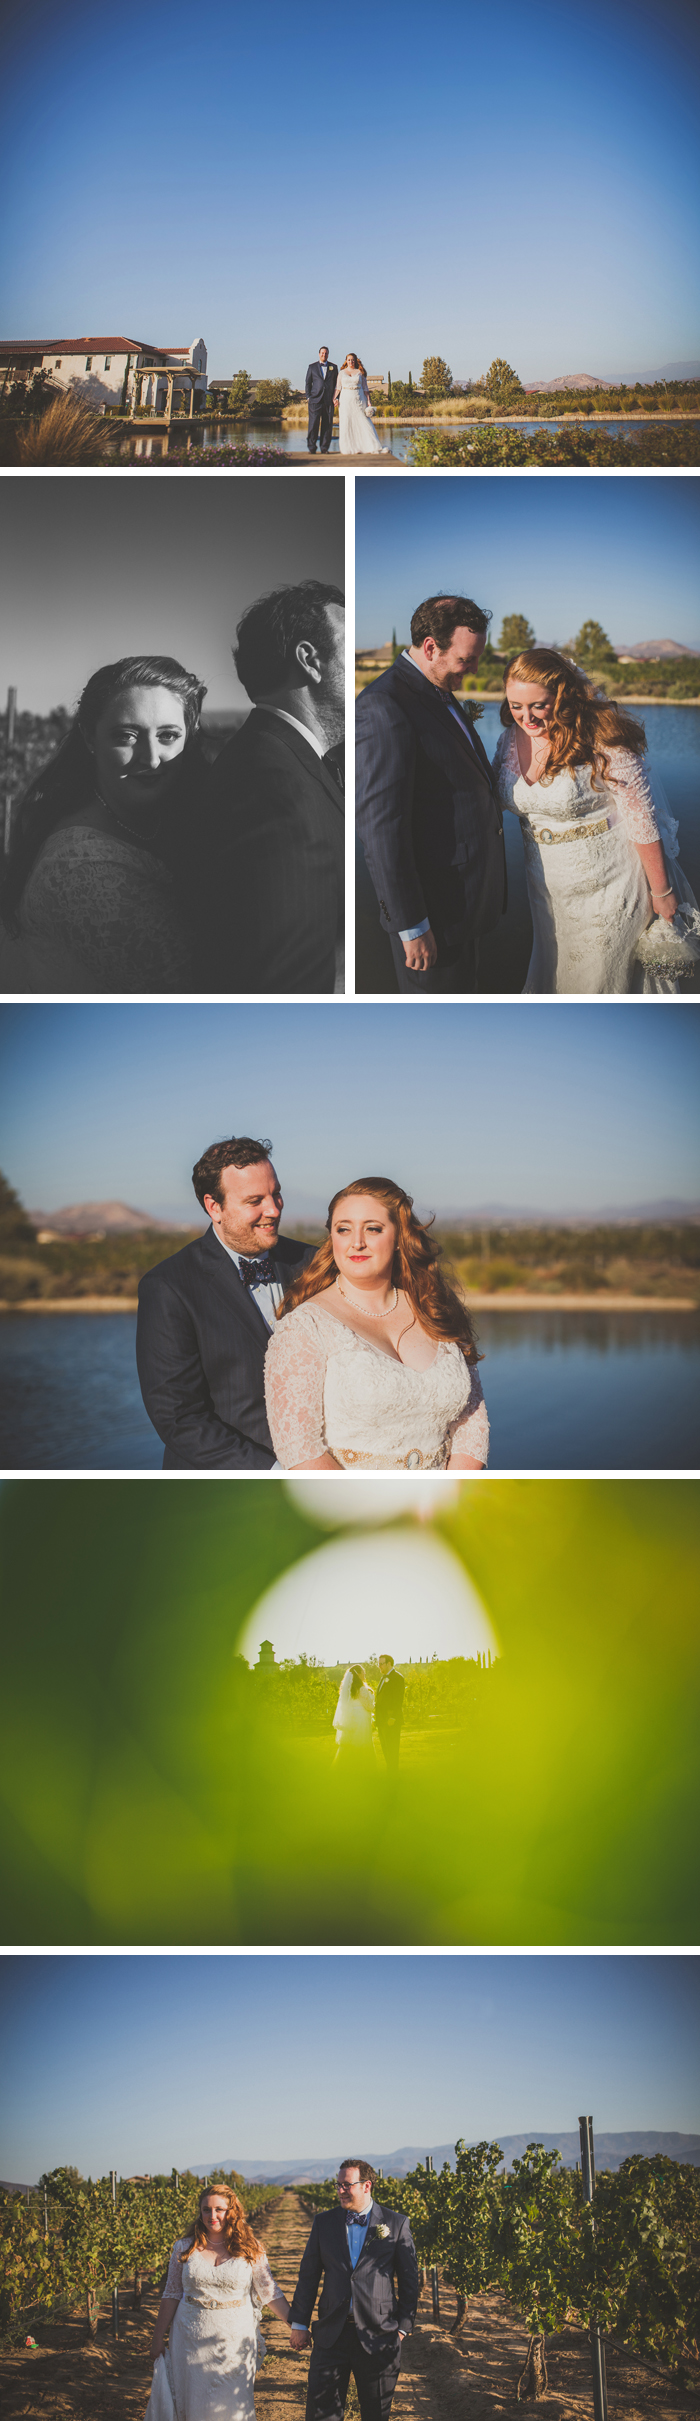 Ponte Inn Wedding Photography Temecula